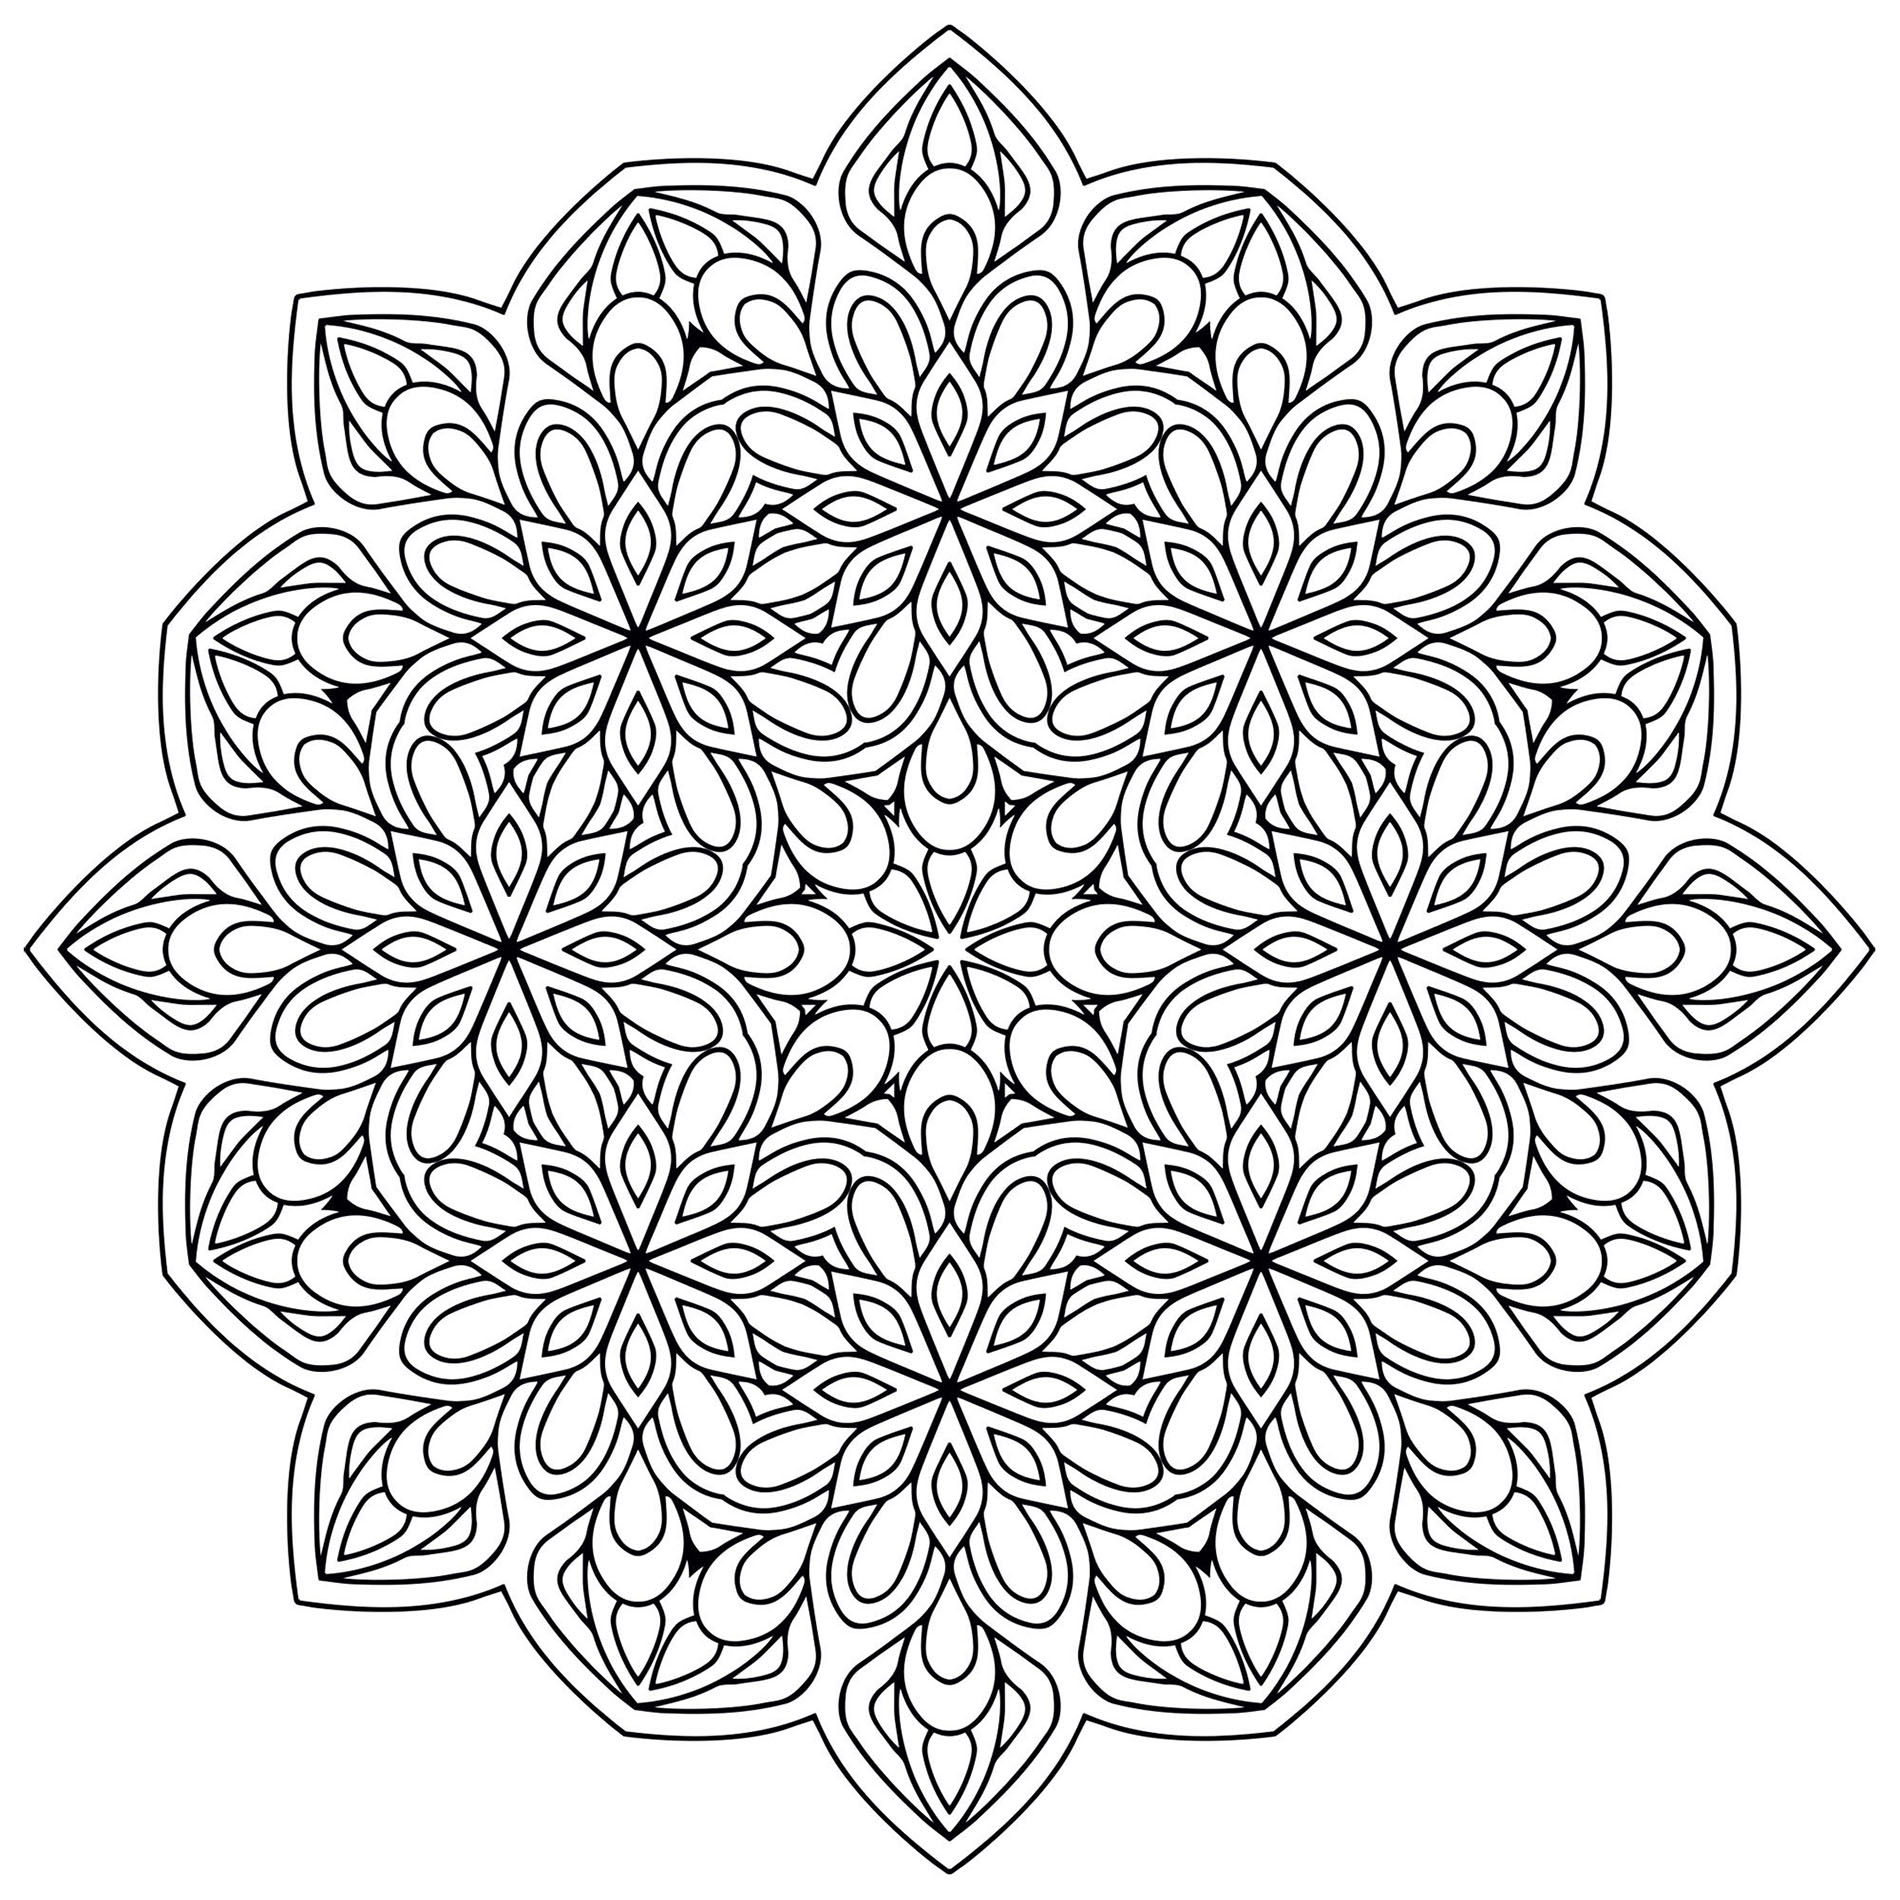 printable indian mandalas coloring pages - photo#46